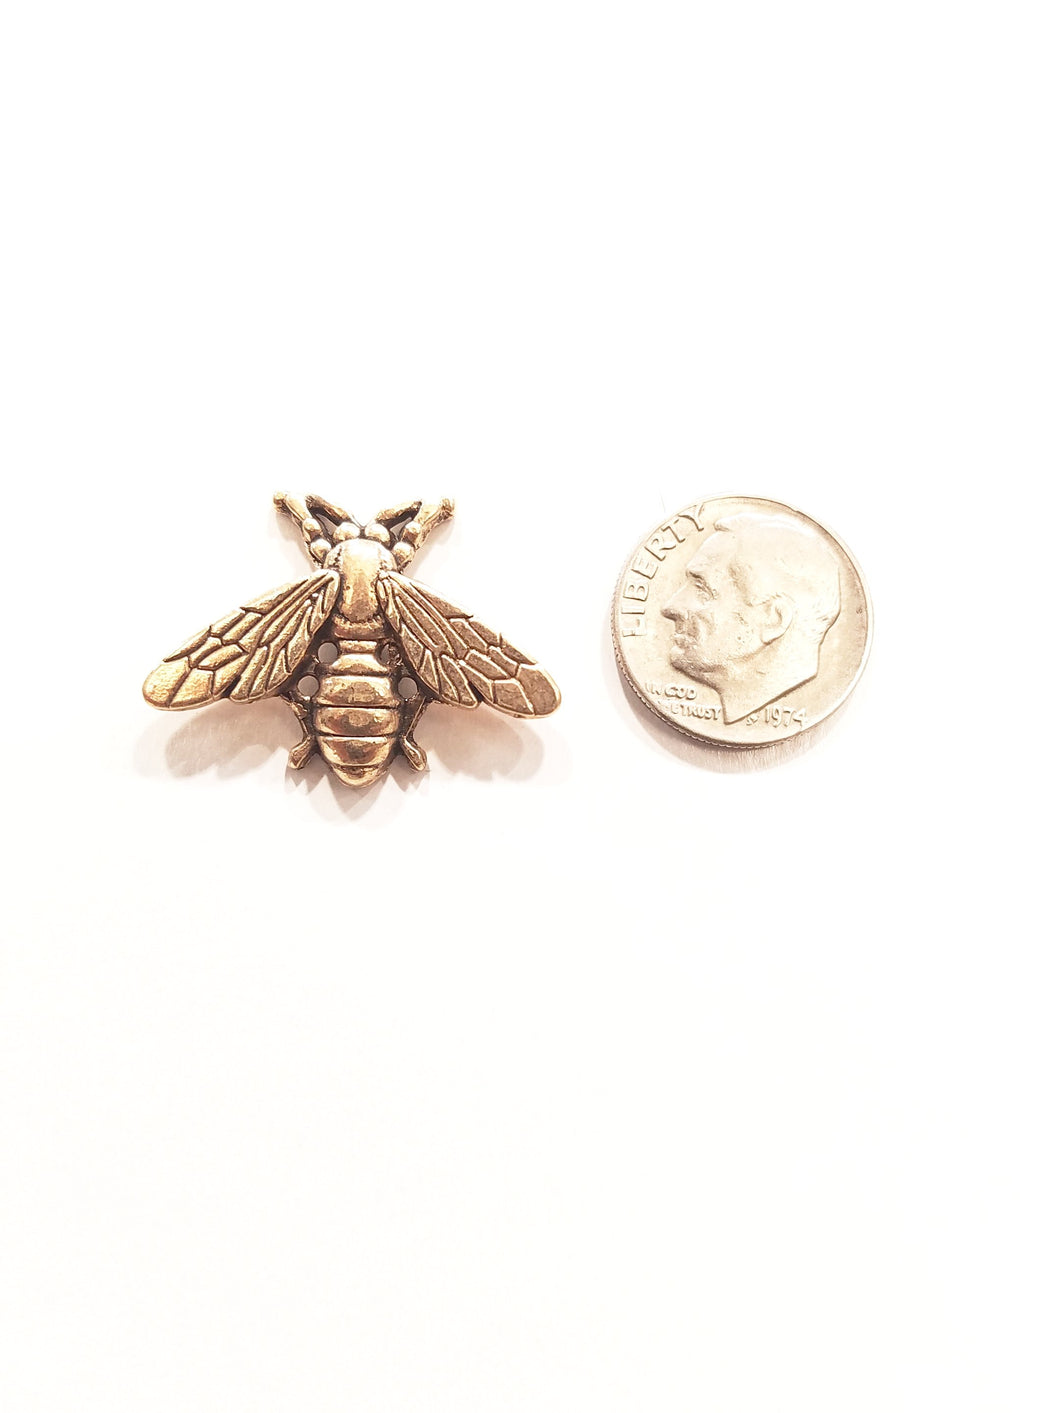 Killer Bee Gold Lapel Pin